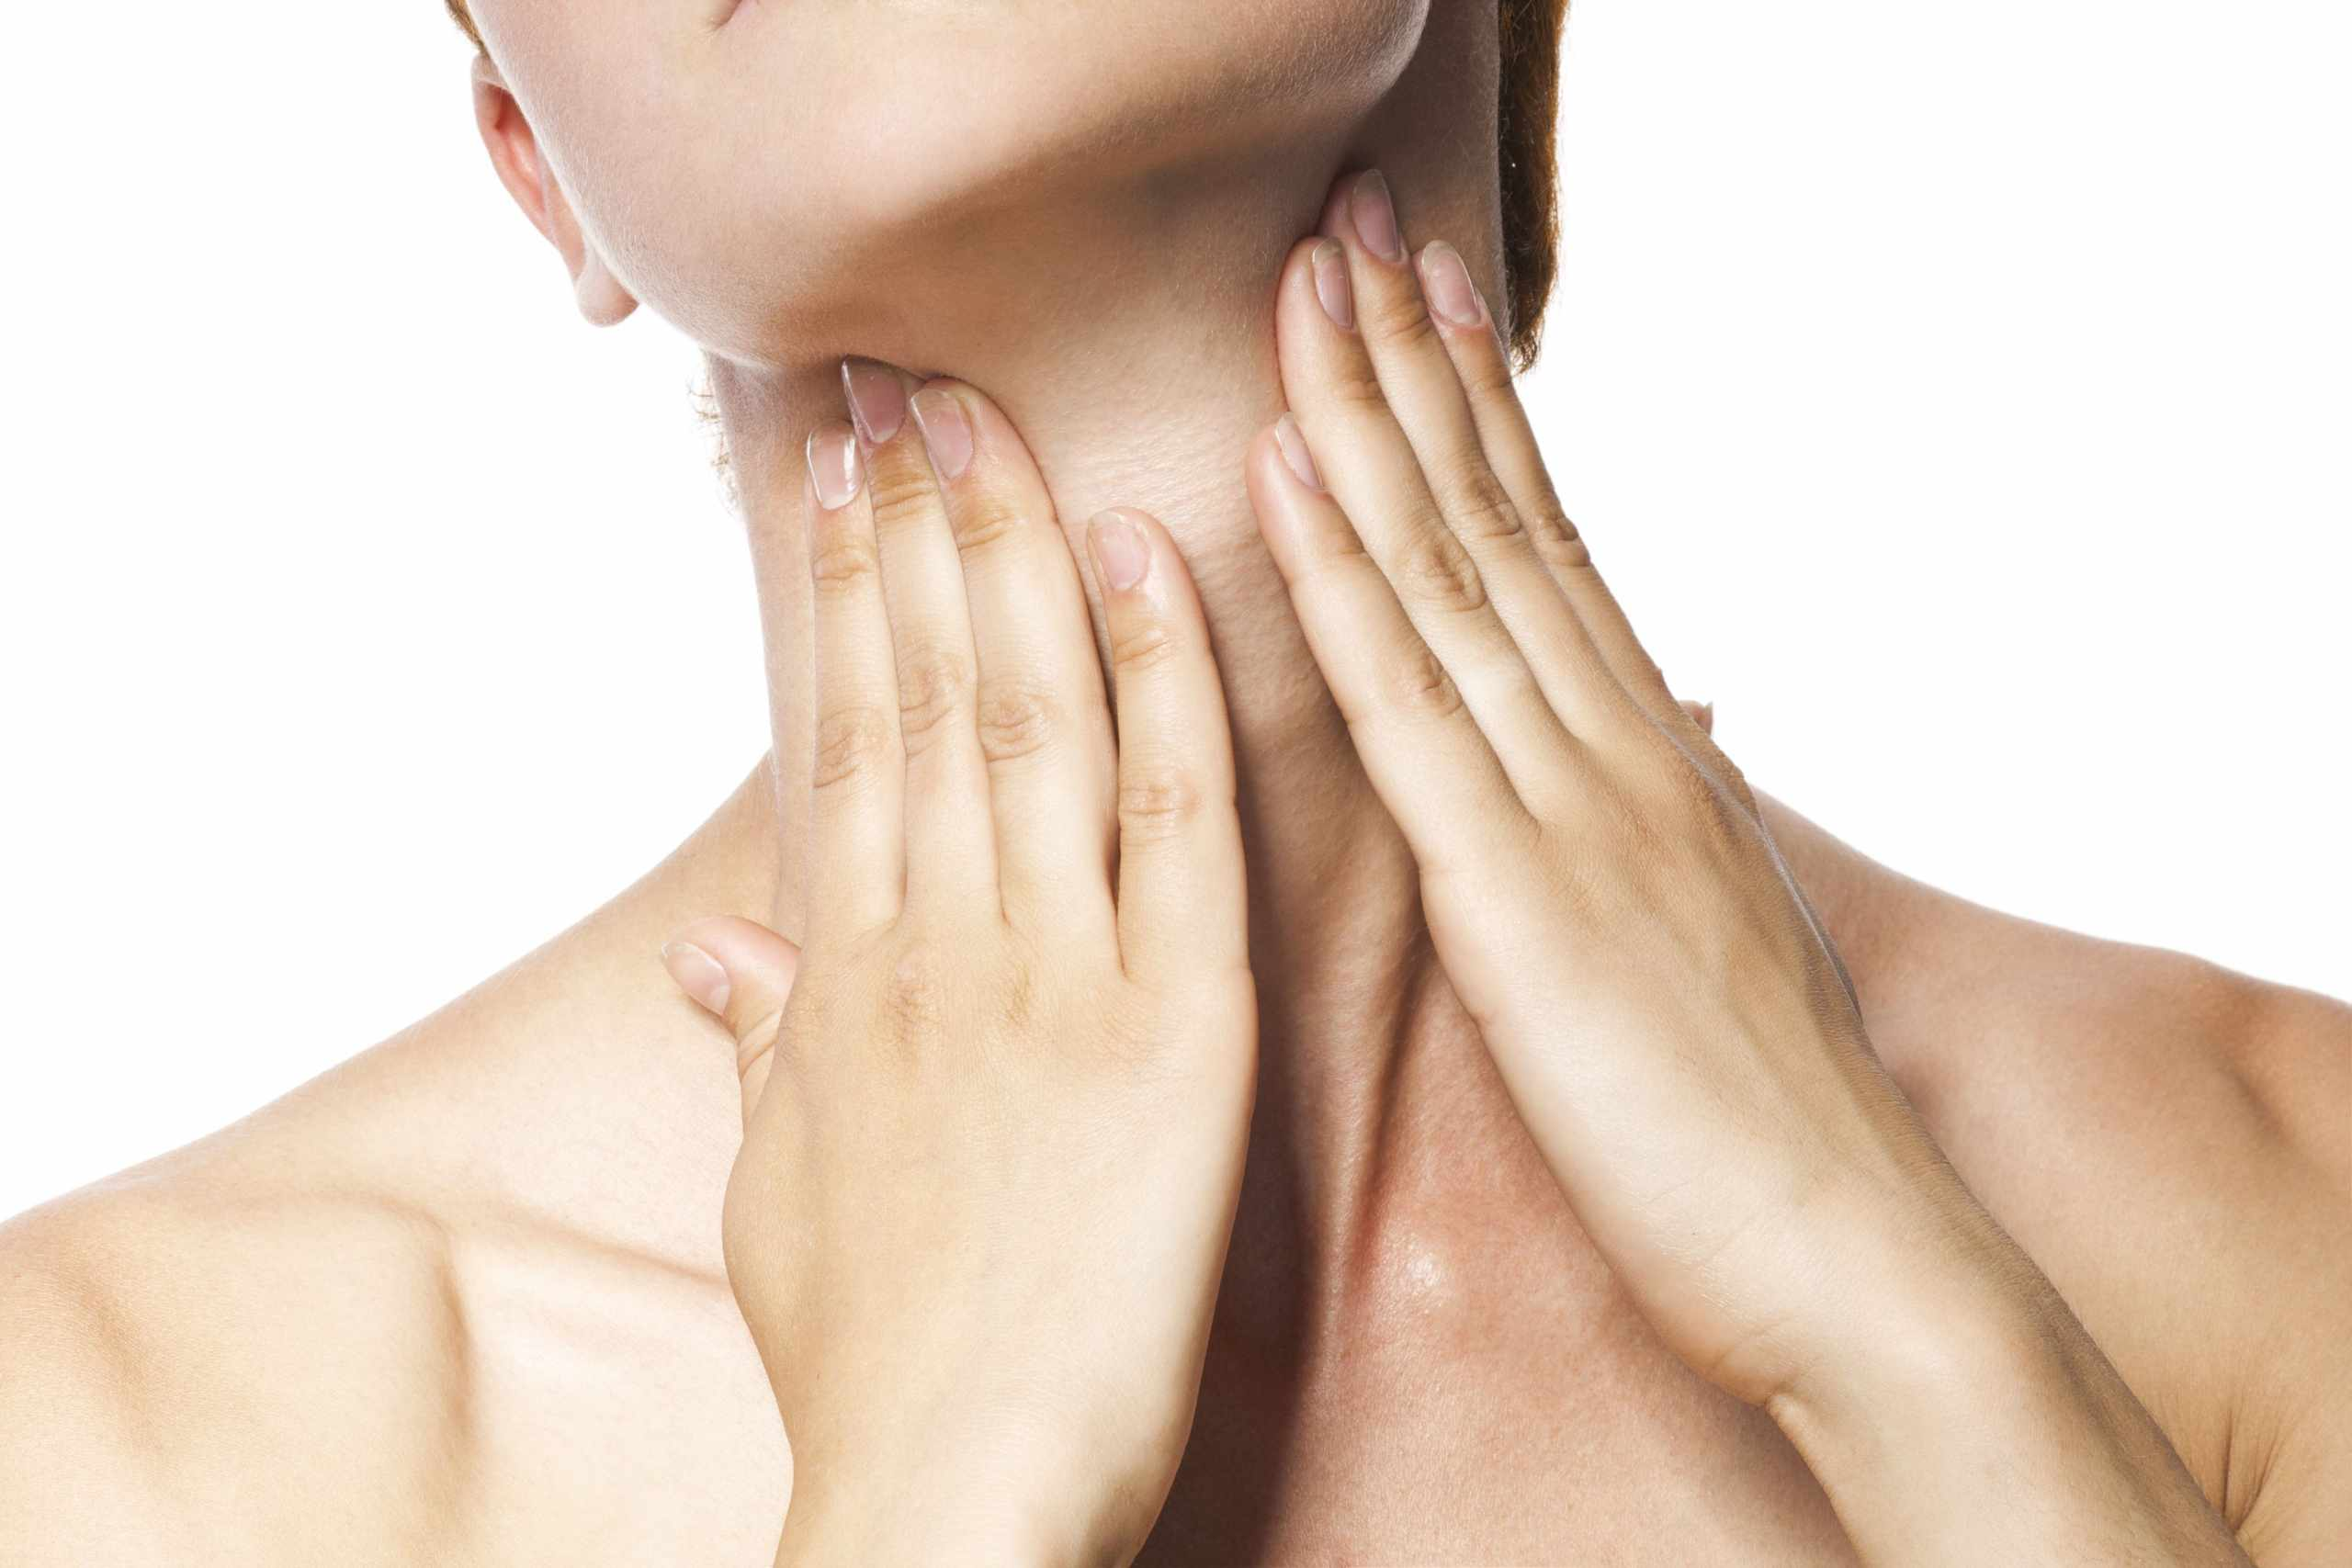 constantly clearing throat of mucus